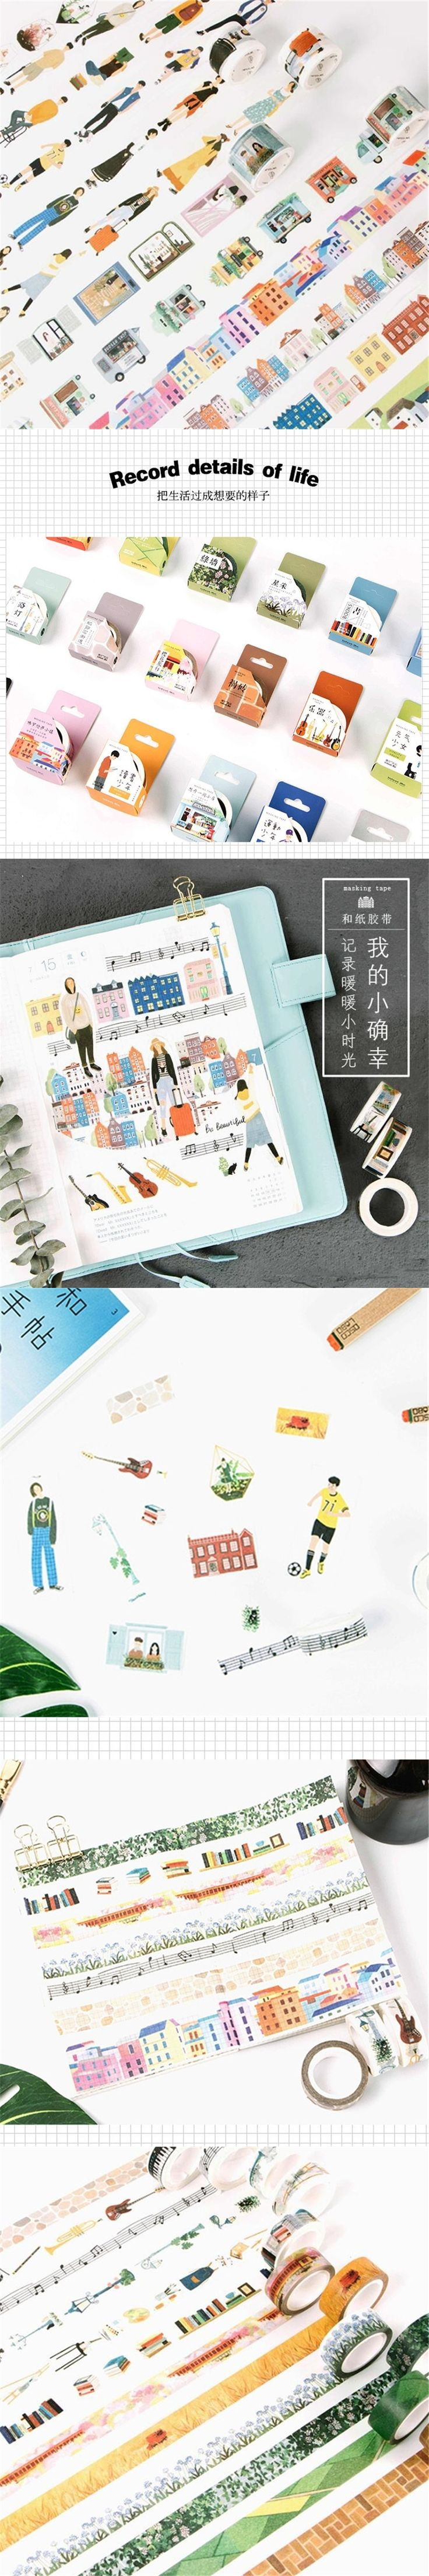 City Series No trace Washi Tape Japanese Stationery DIY Diary Scrapbooking Functional Decorative Scotch Tape Masking Stickers